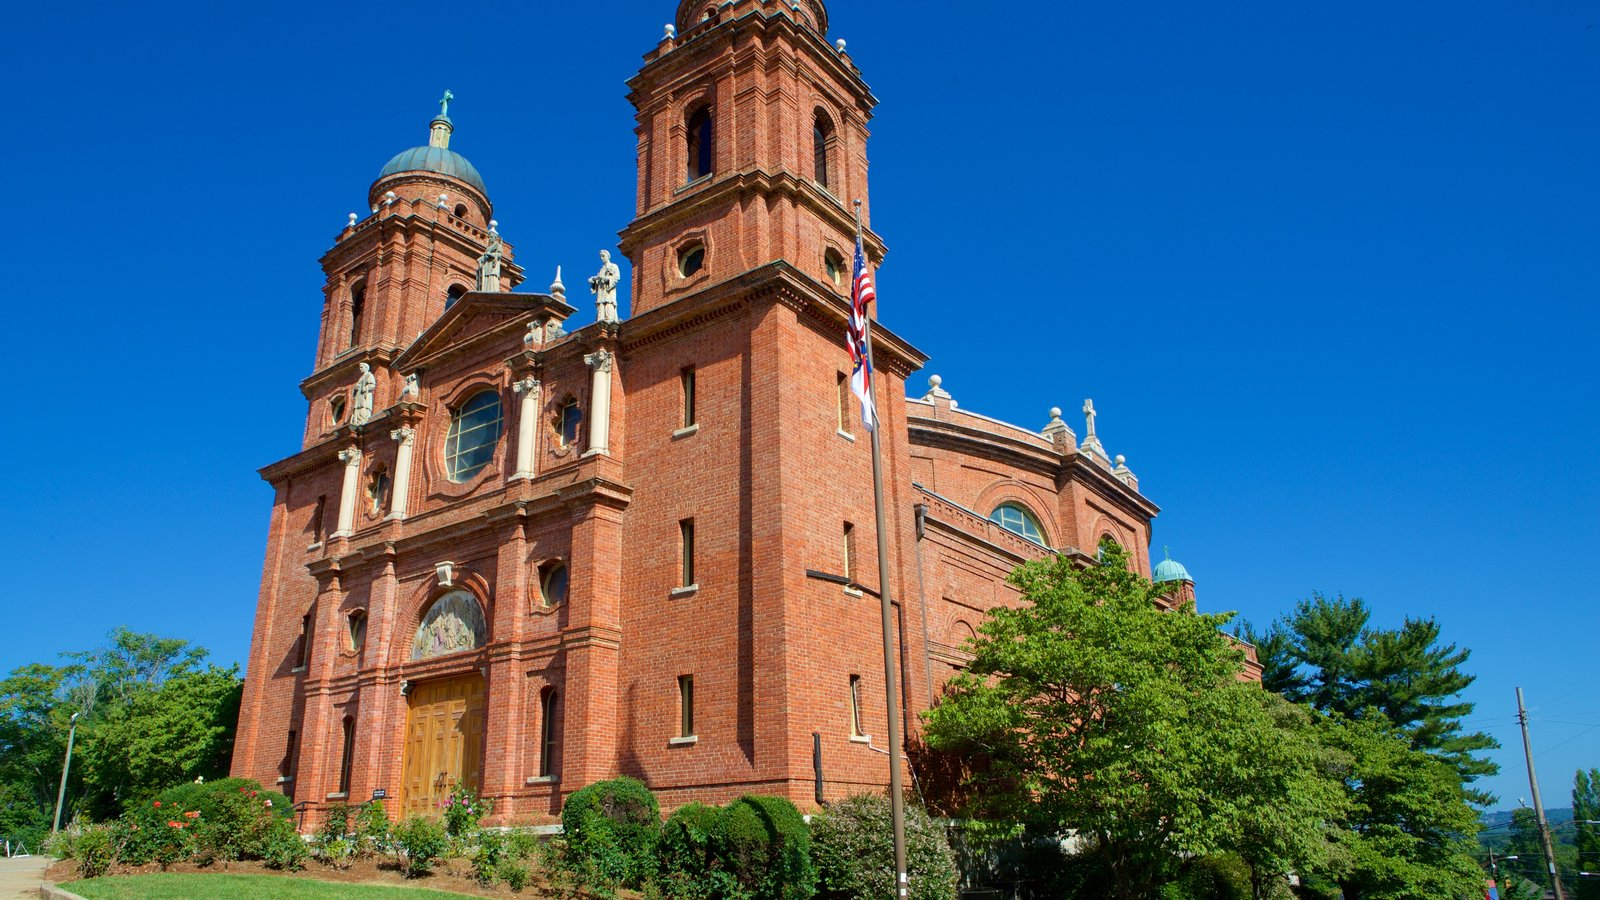 Basilica of Saint Lawrence showing heritage architecture, heritage elements and a church or cathedral